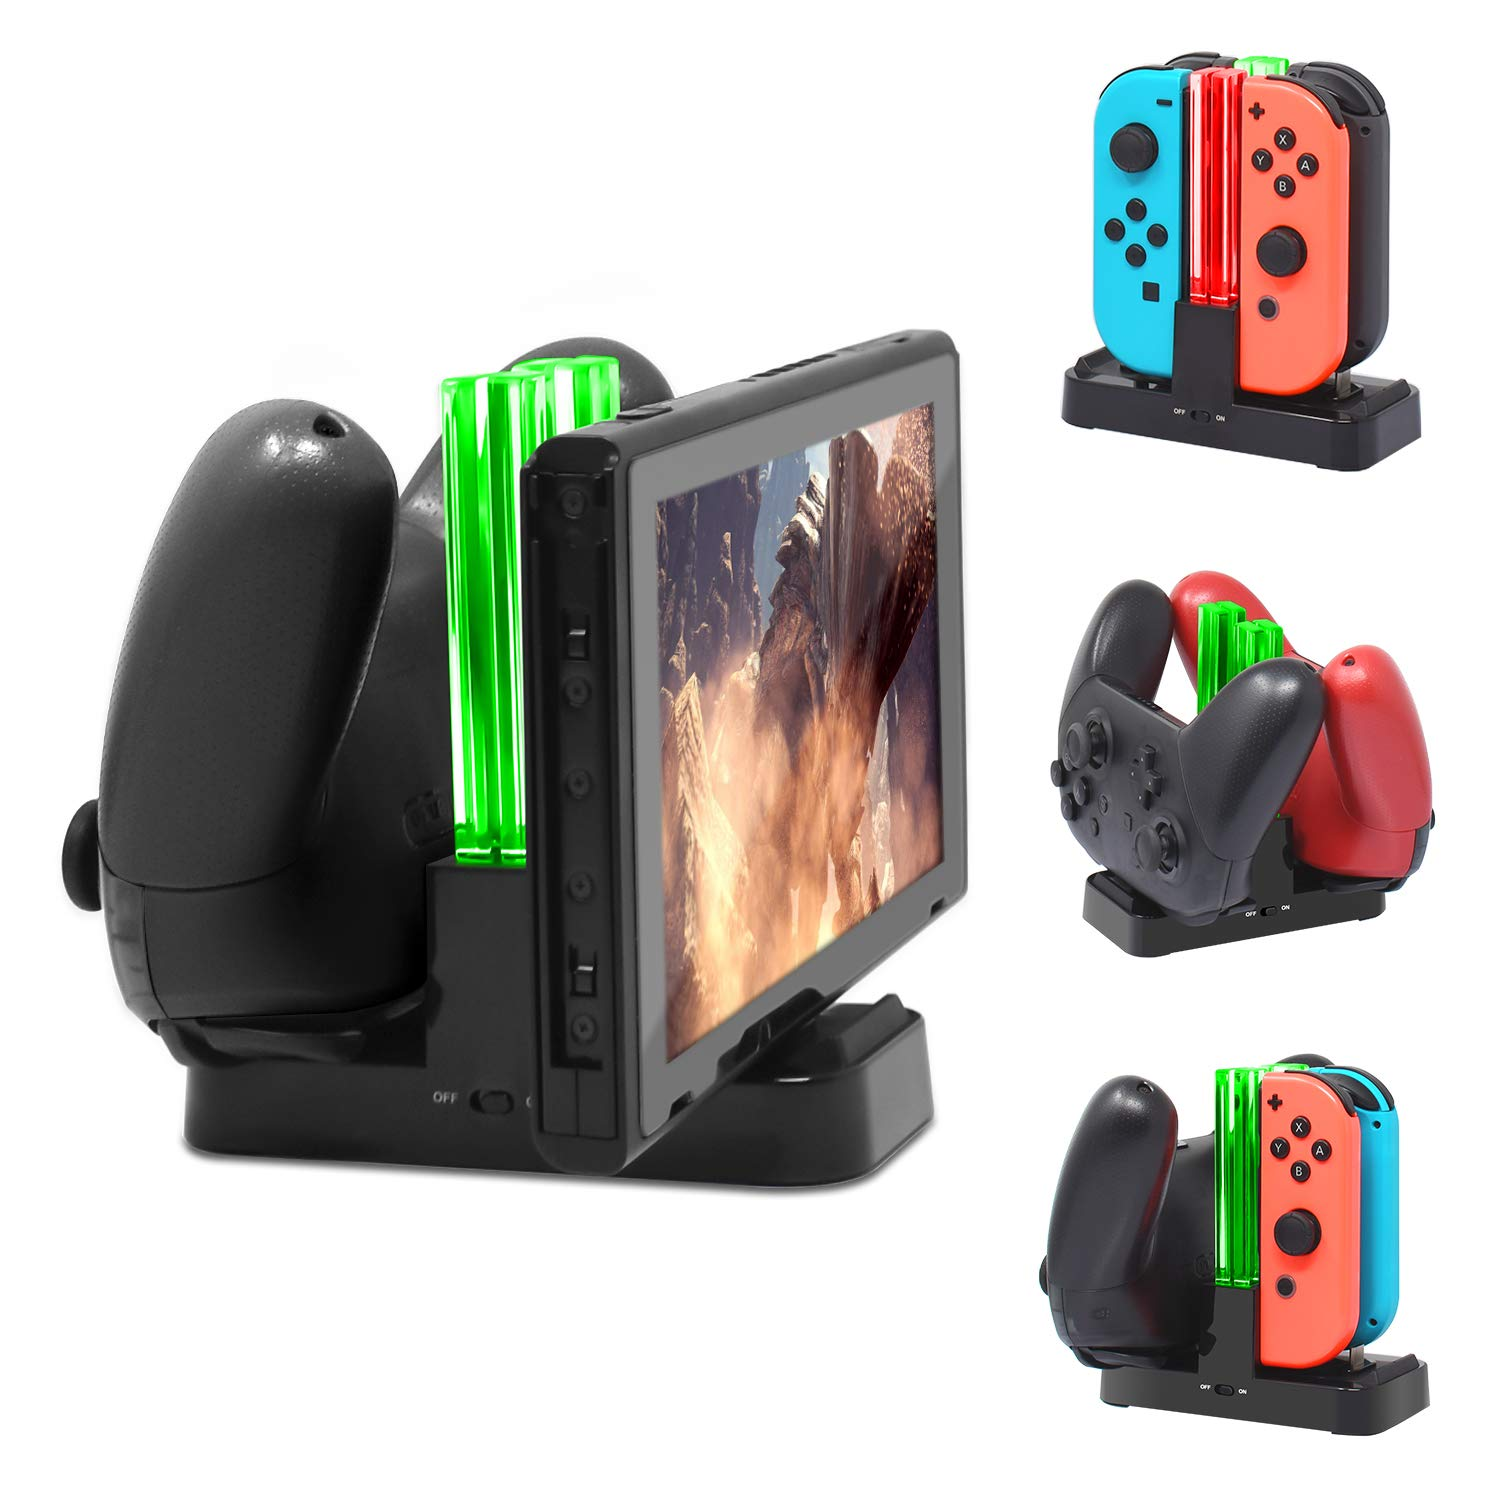 MENEEA Charging Dock for Nintendo Switch, Charger Station Stand for Joy-Cons and Pro Controller with LED Indication and Type-C USB Charger Cable by MENEEA